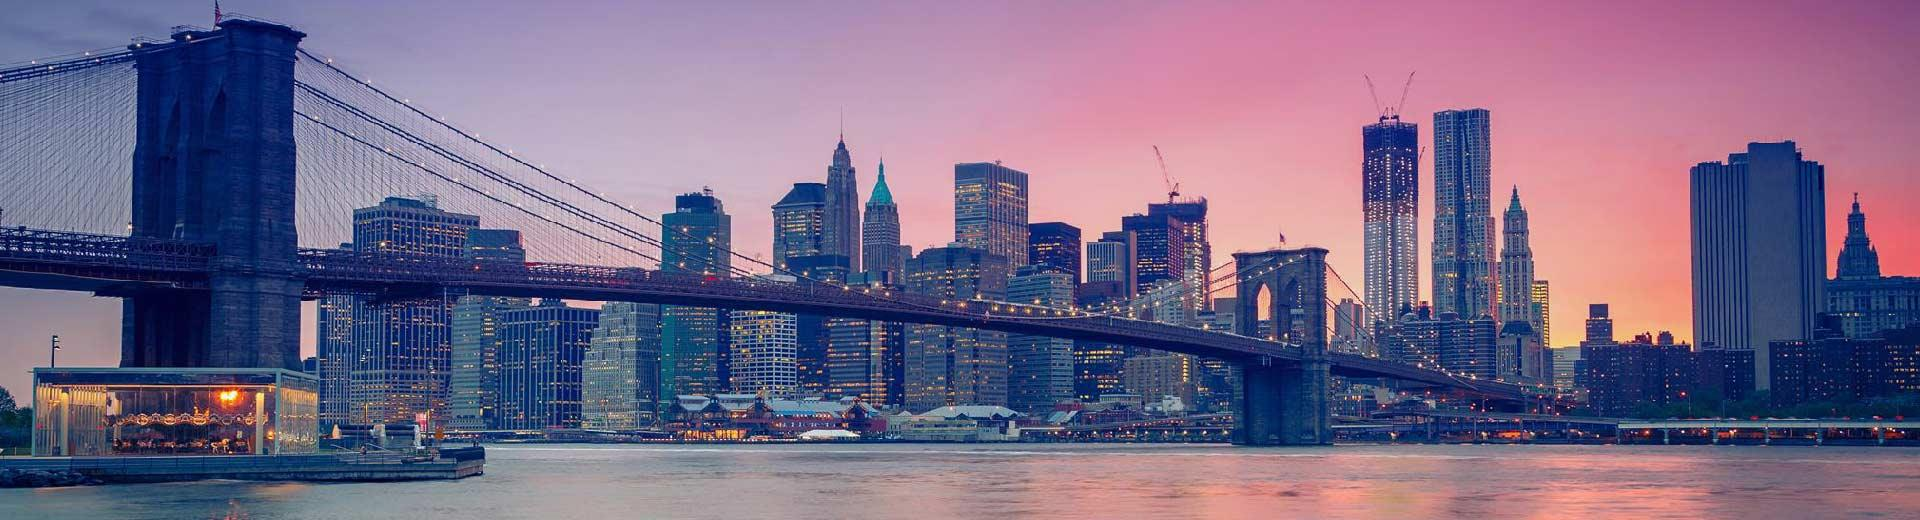 Checkin&Win contest Book now: you can win a trip to New York!